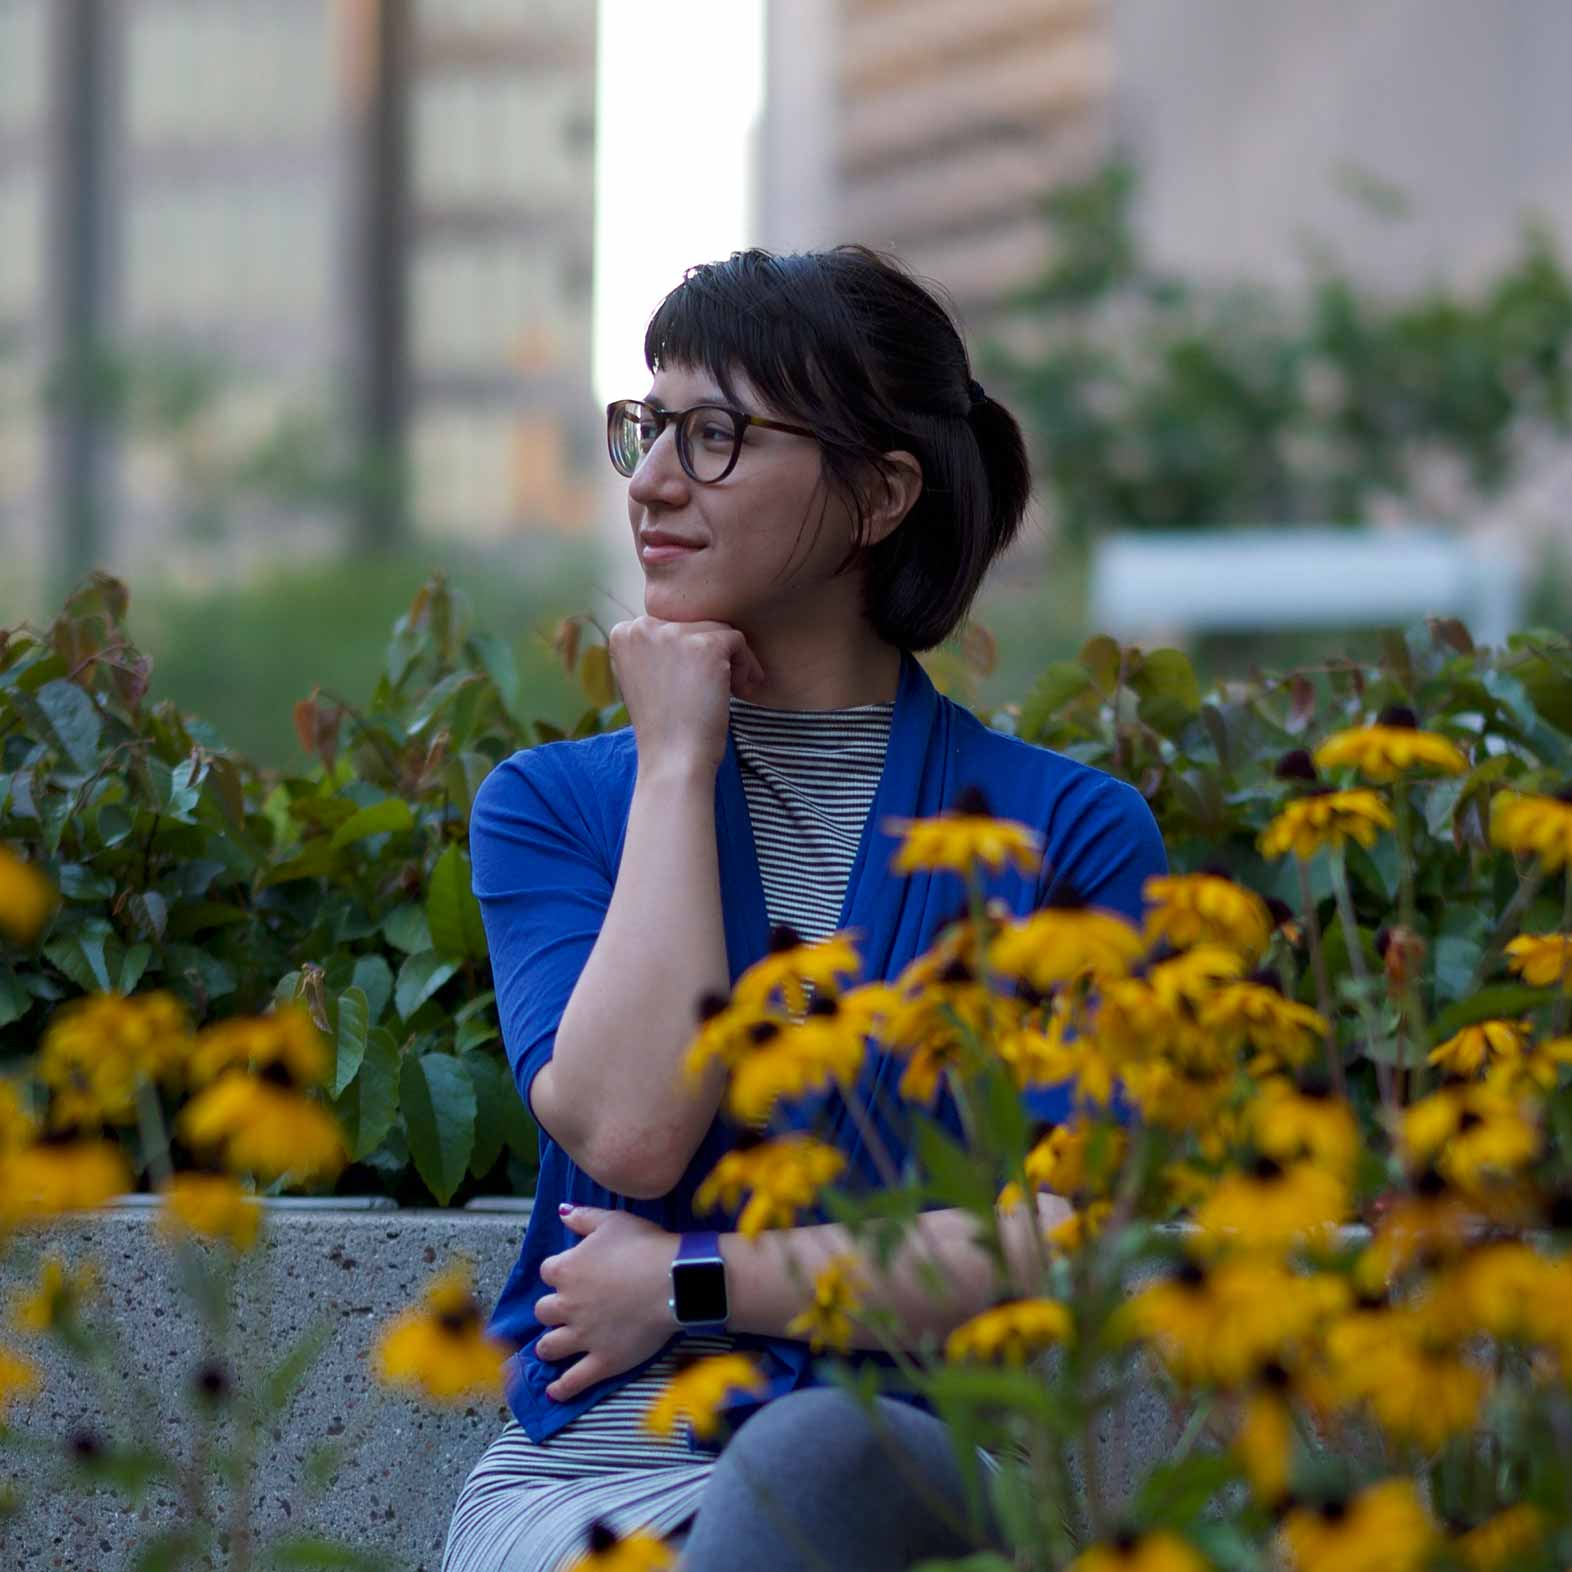 Gwen is sitting amongst flowers, her hand to her chin. She has dark hair that lays gently over her dark framed glasses. Gwen is wearing a blue cardigan over a striped shirt.